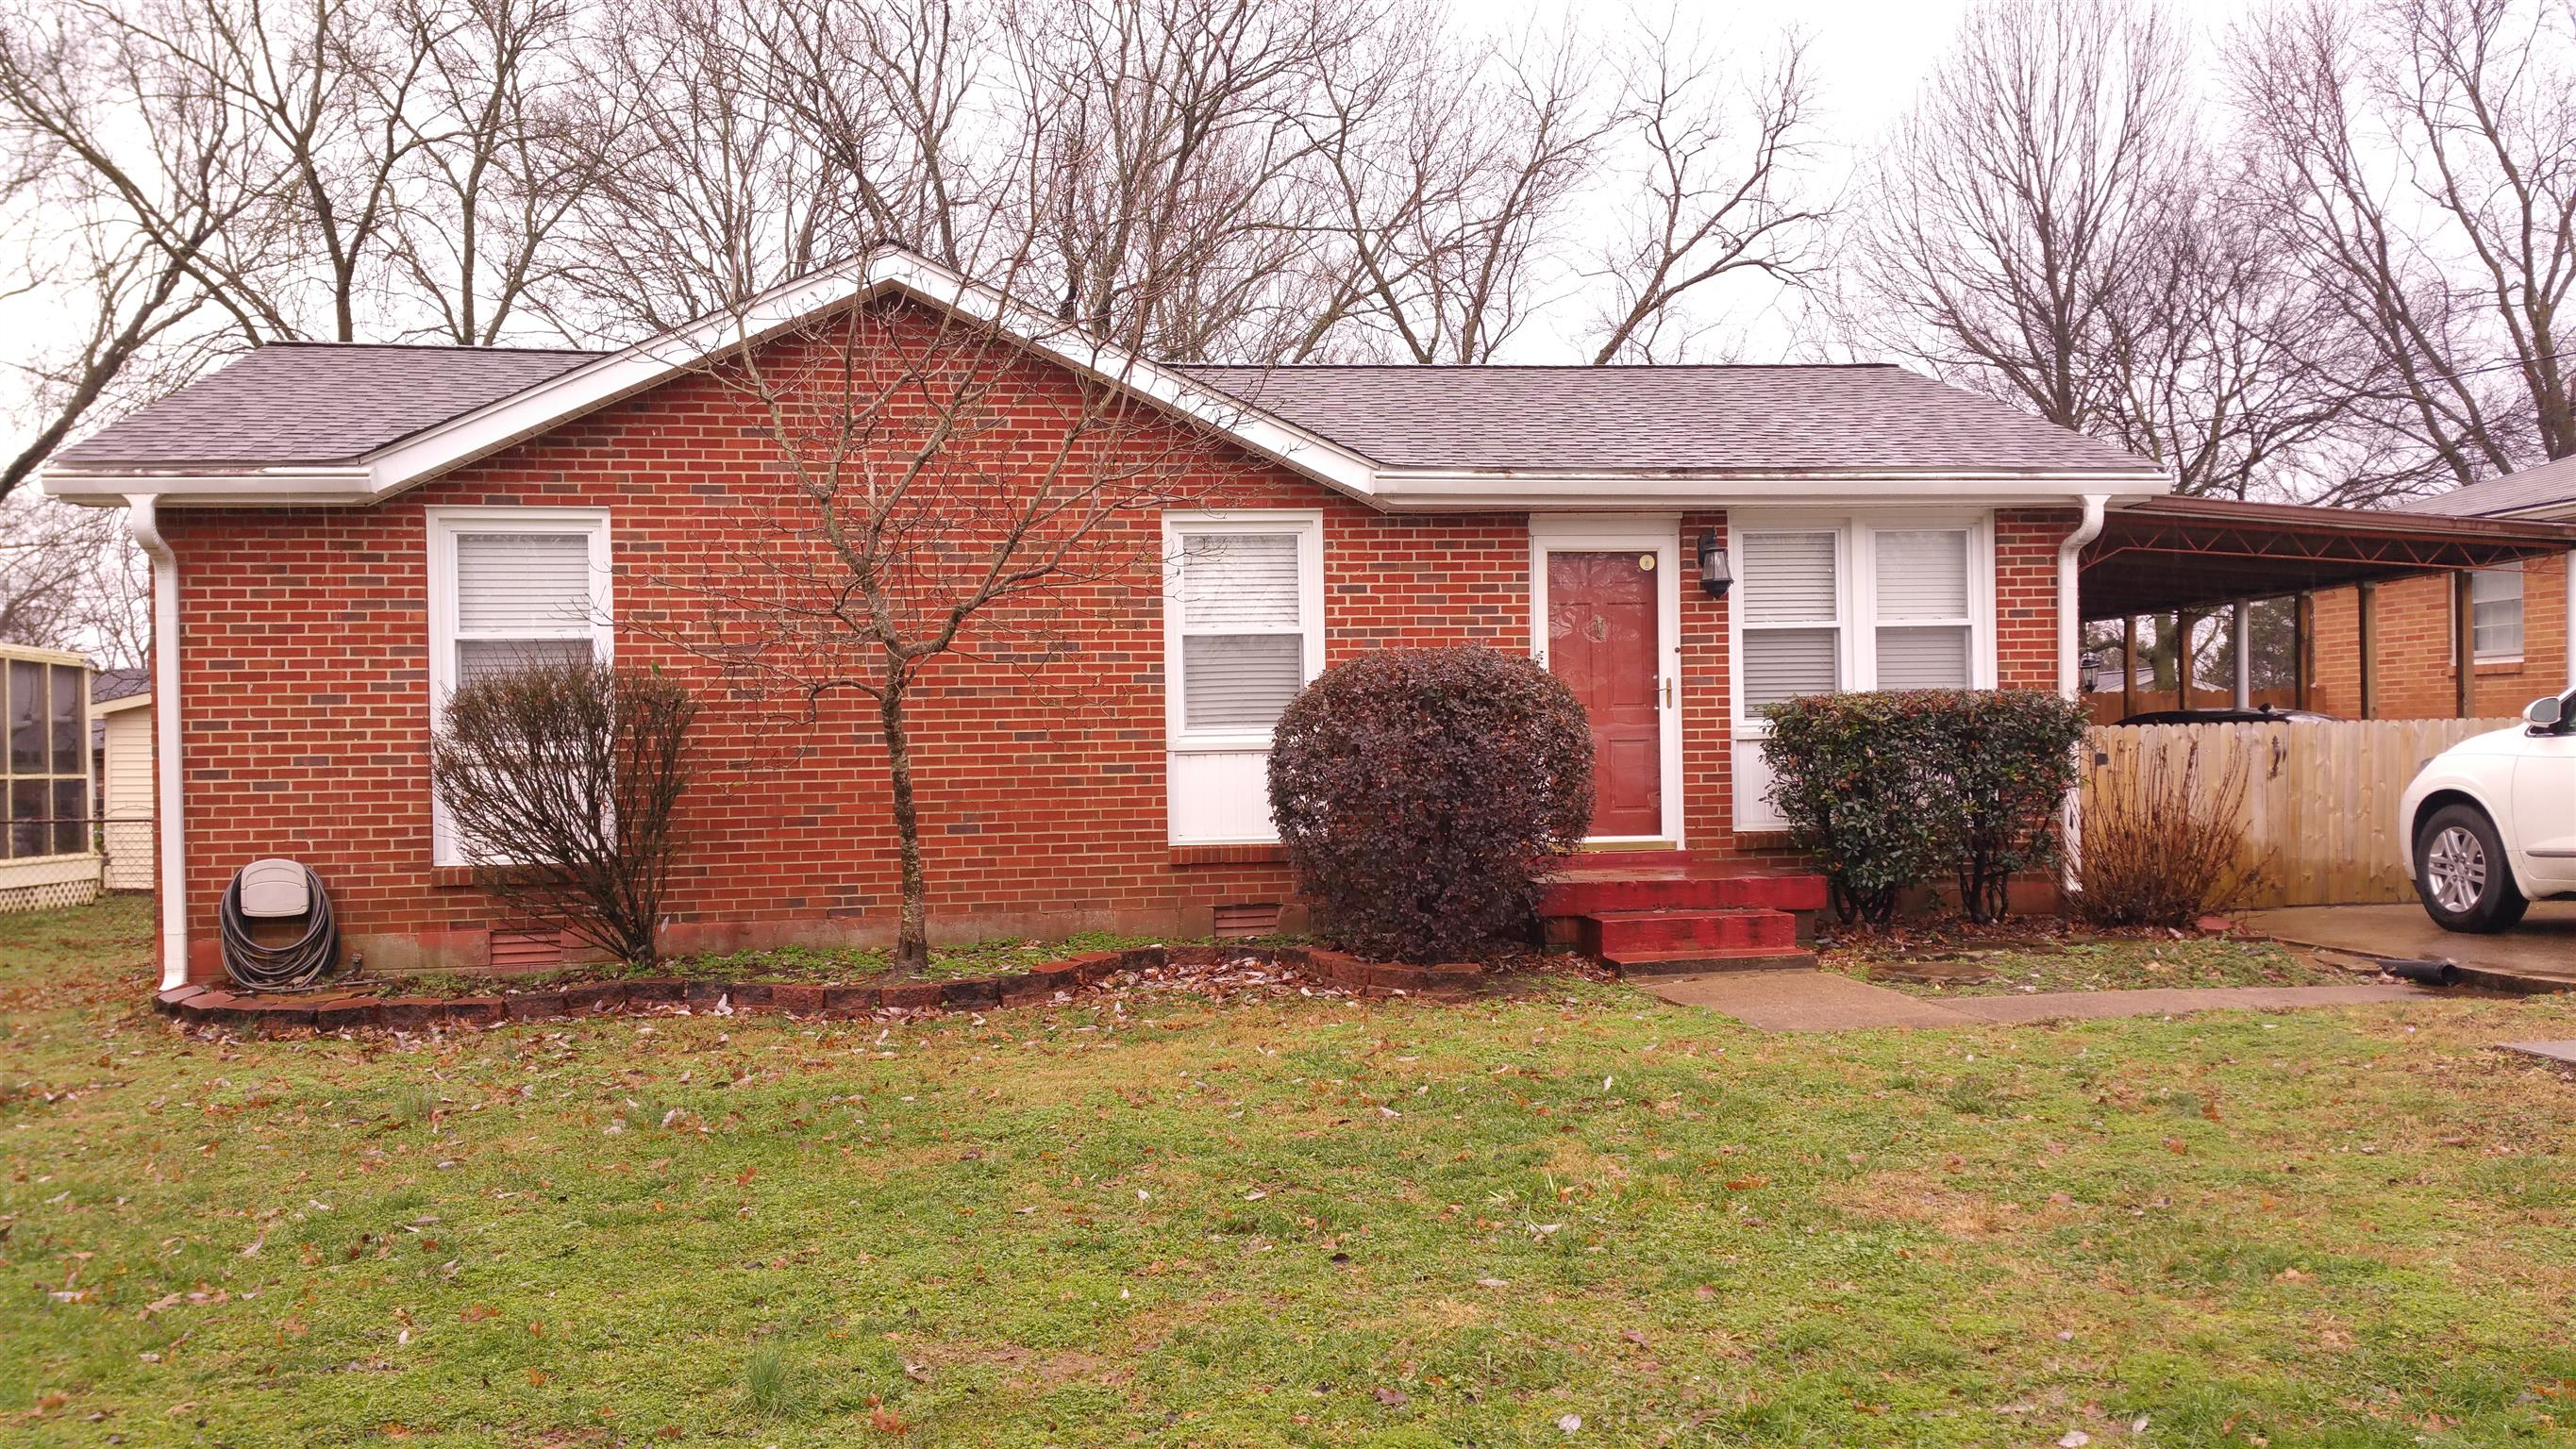 6014 Baltic Dr, Hermitage in Davidson County County, TN 37076 Home for Sale